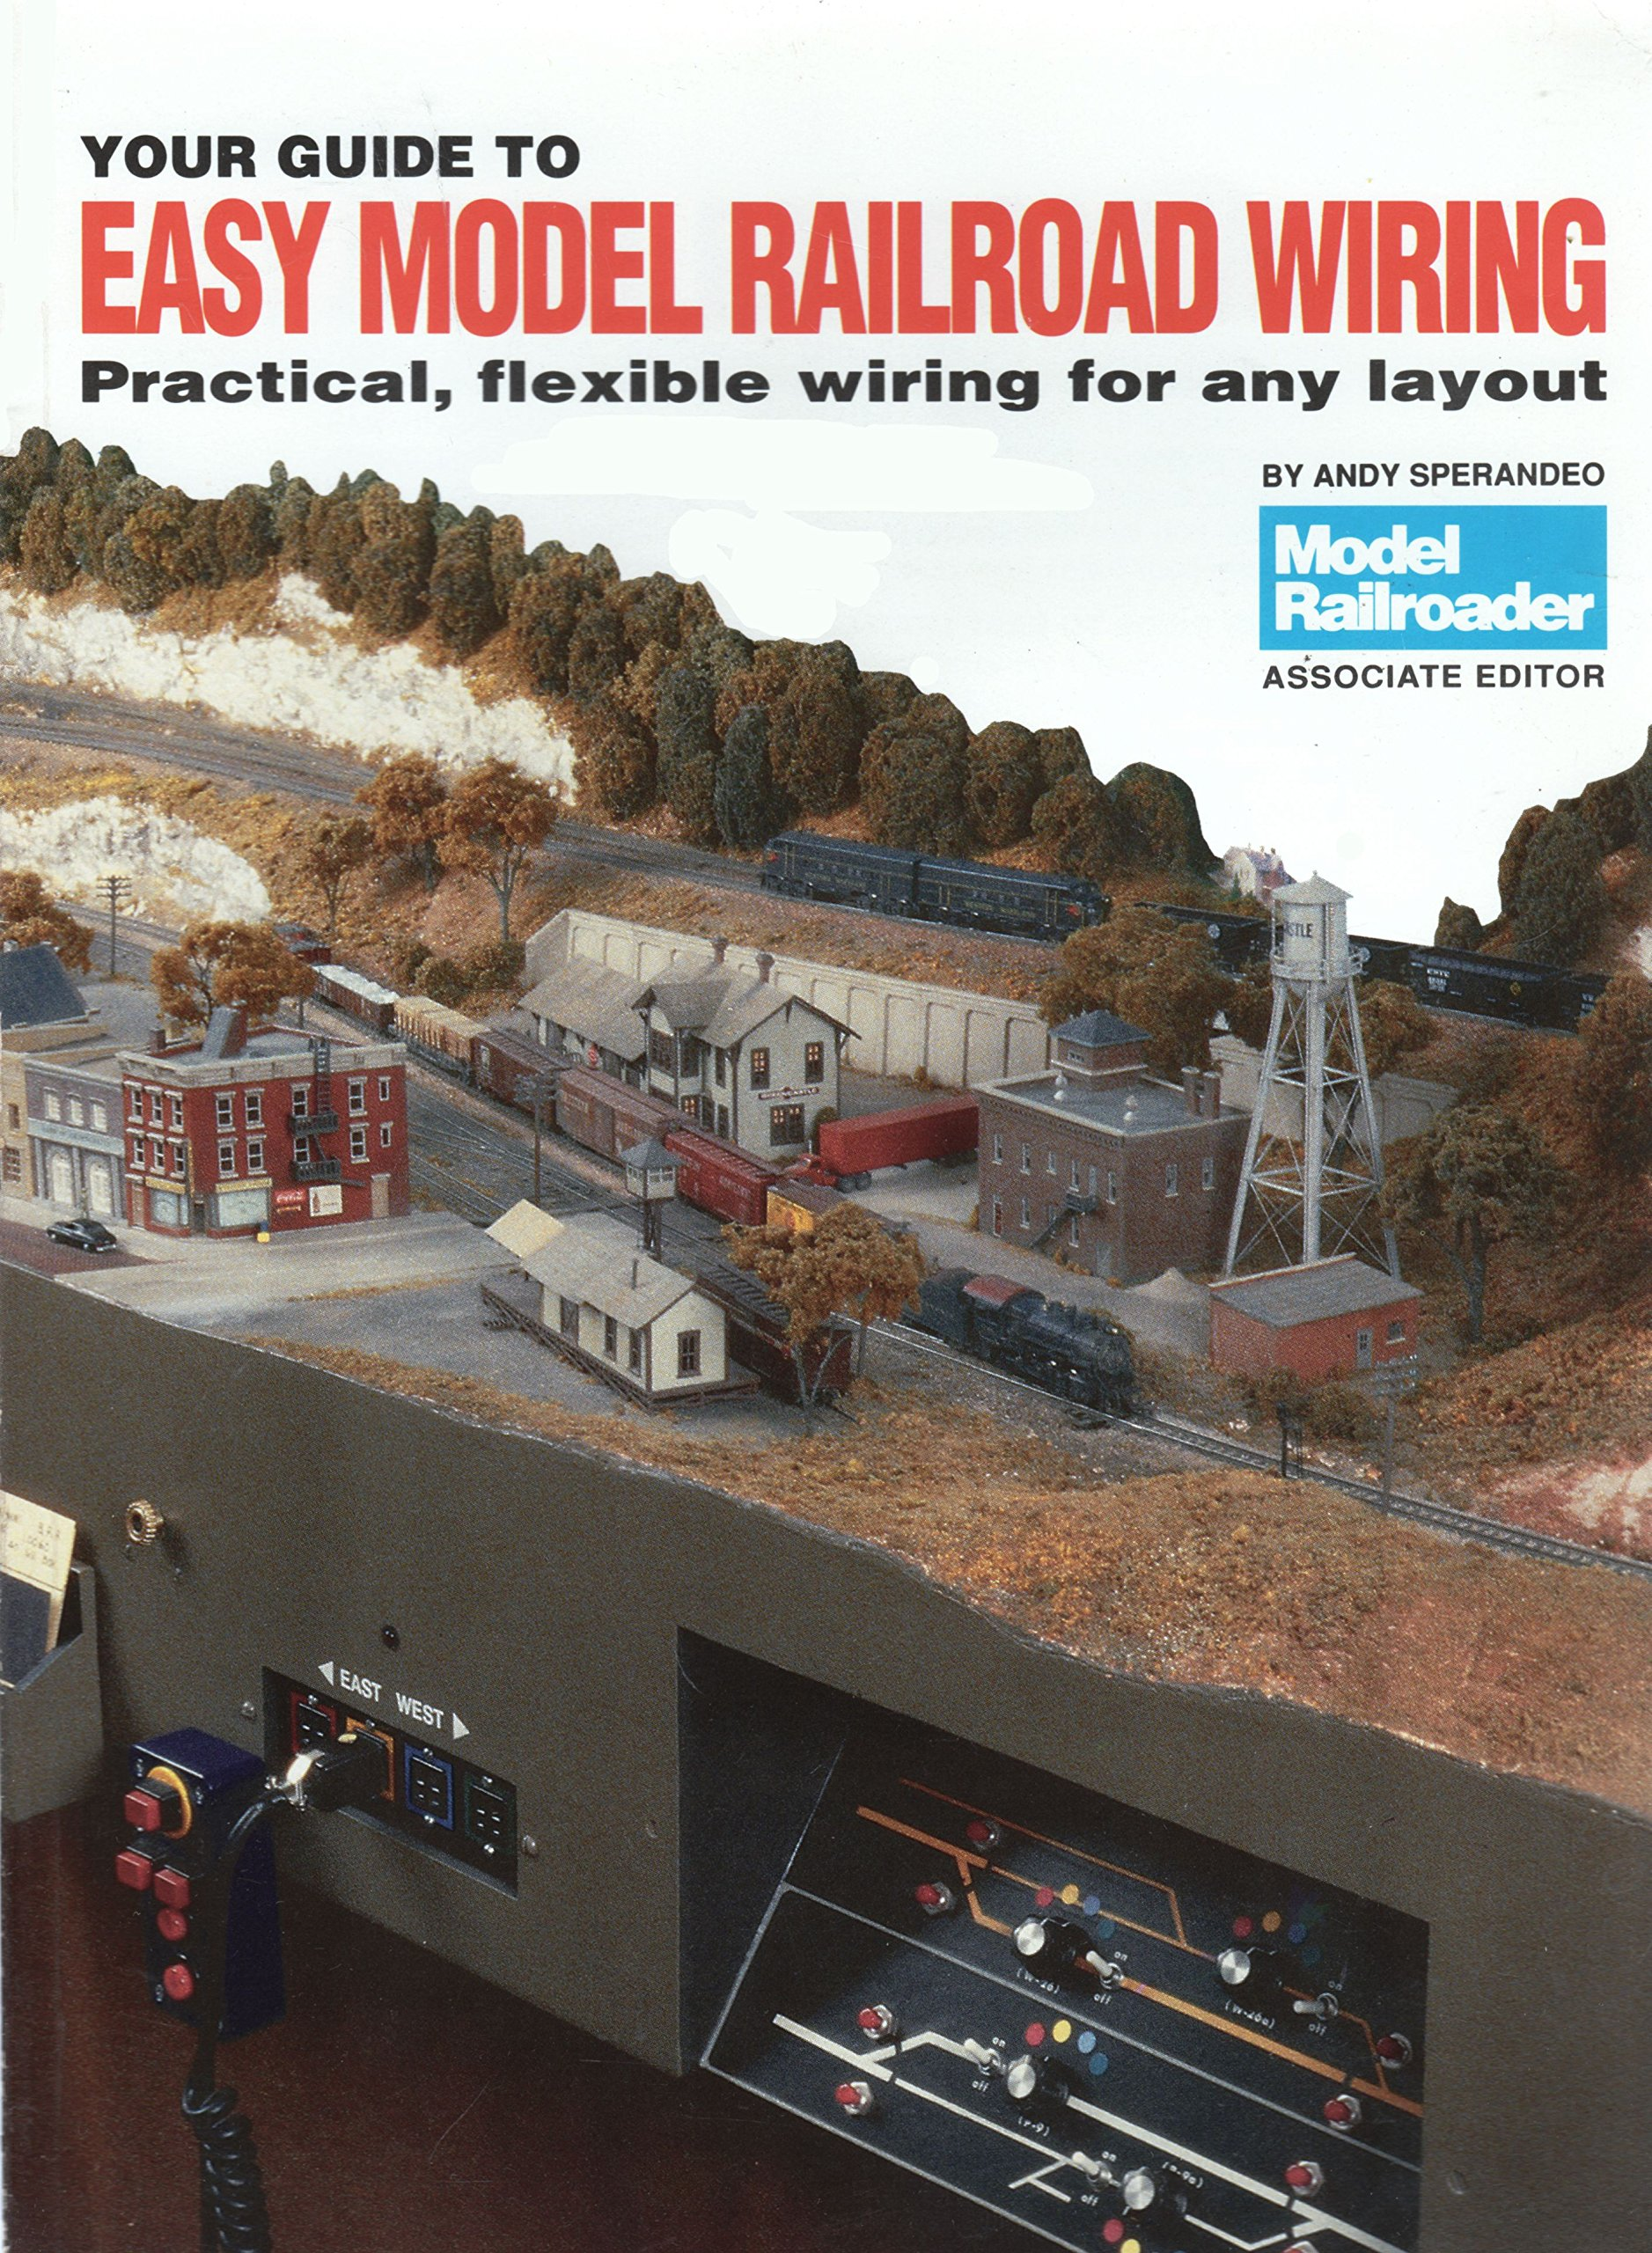 Your Guide To Easy Model Railroad Wiring Andy Sperandeo Blocks 9780890240601 Books